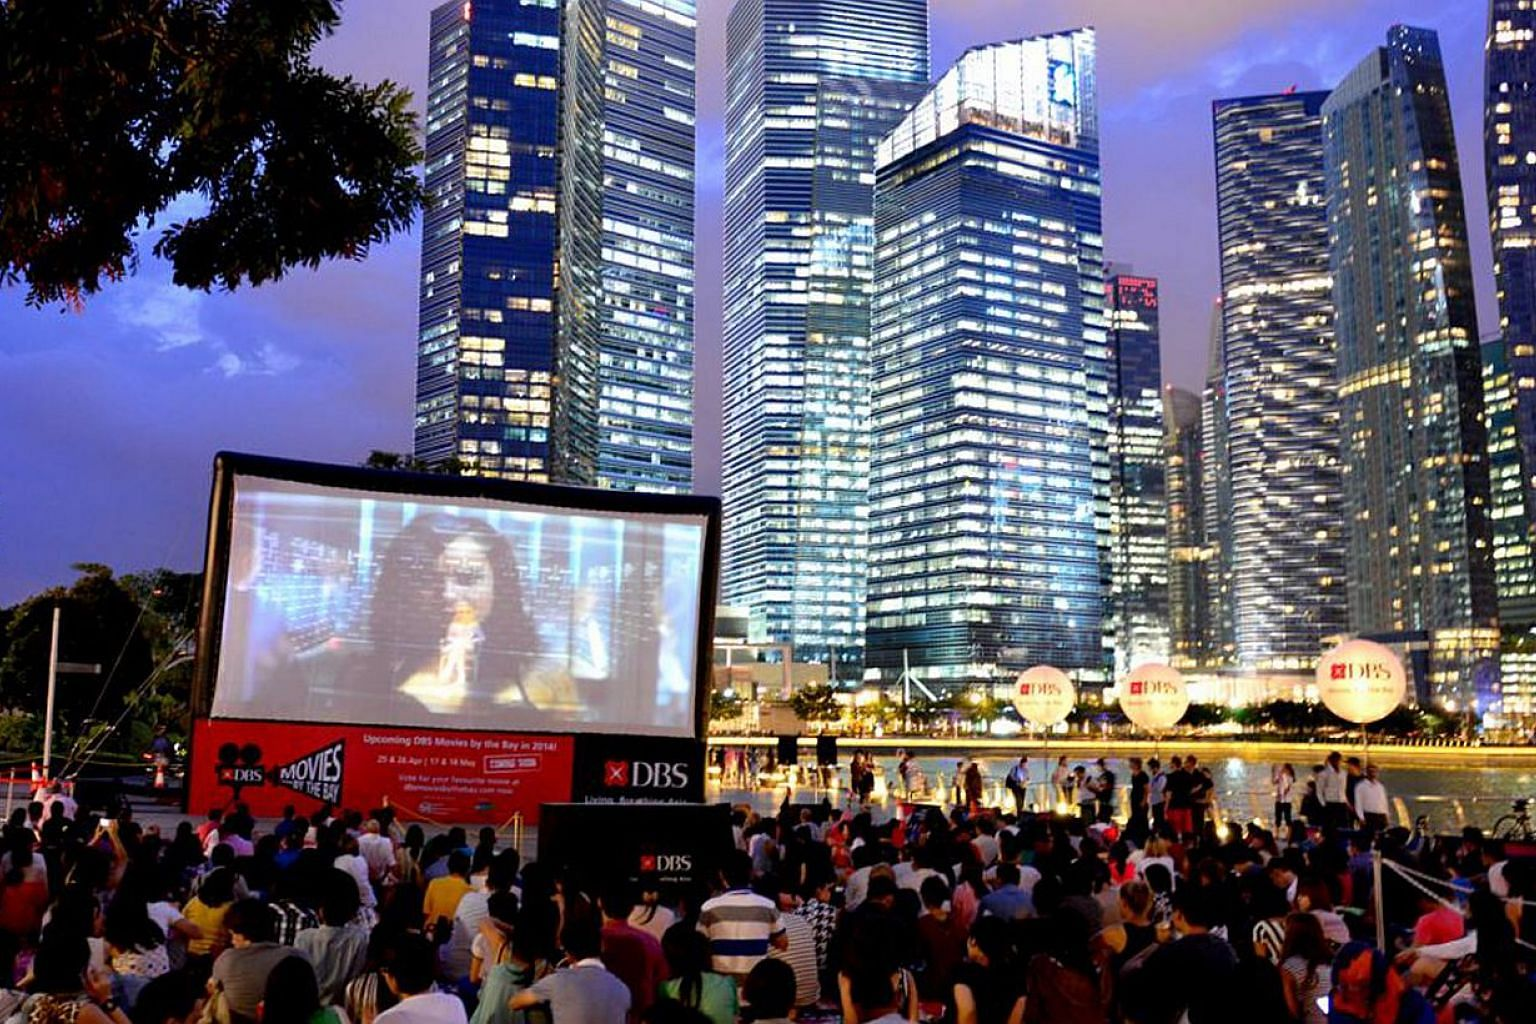 People watching a film during a screening at the DBS Movies by the Bay, a monthly event launched in October 2013. DBS has pledged to pump in another $12 million over the next three years to draw more people to the Marina Bay area, to make it a vibran